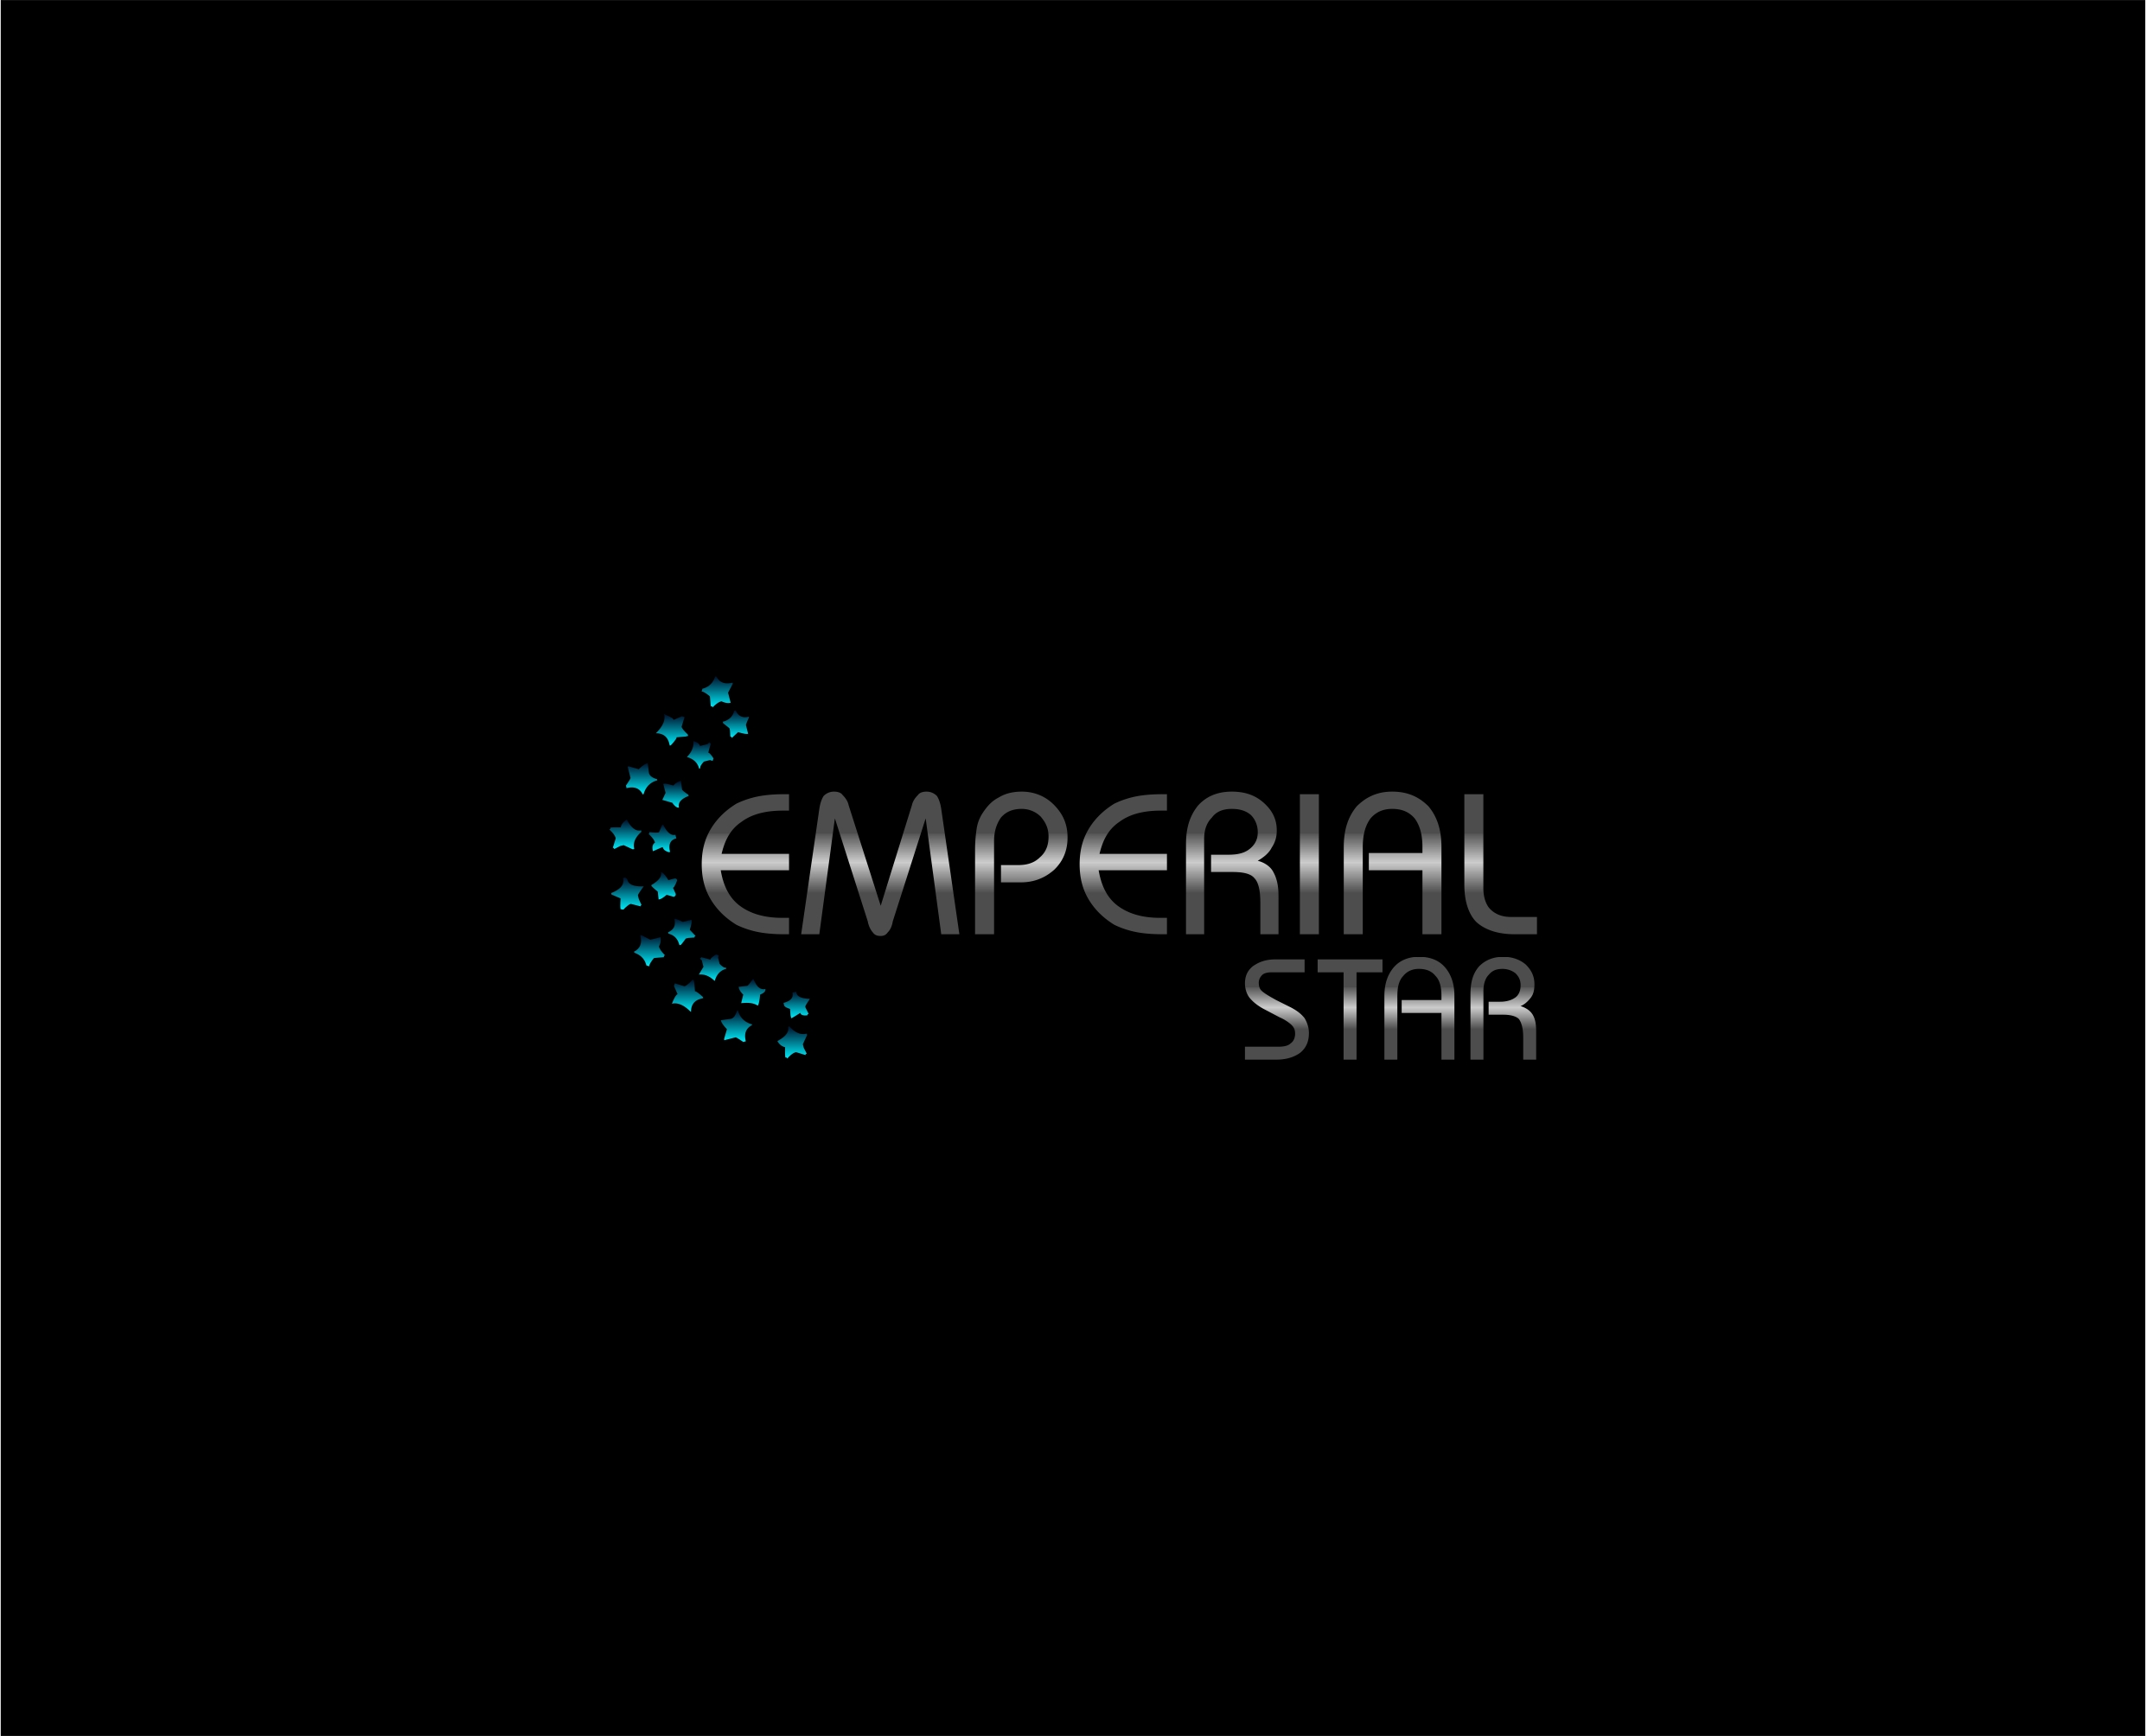 Logo Design by dbb201 - Entry No. 29 in the Logo Design Contest Emperial Star Logo Design.